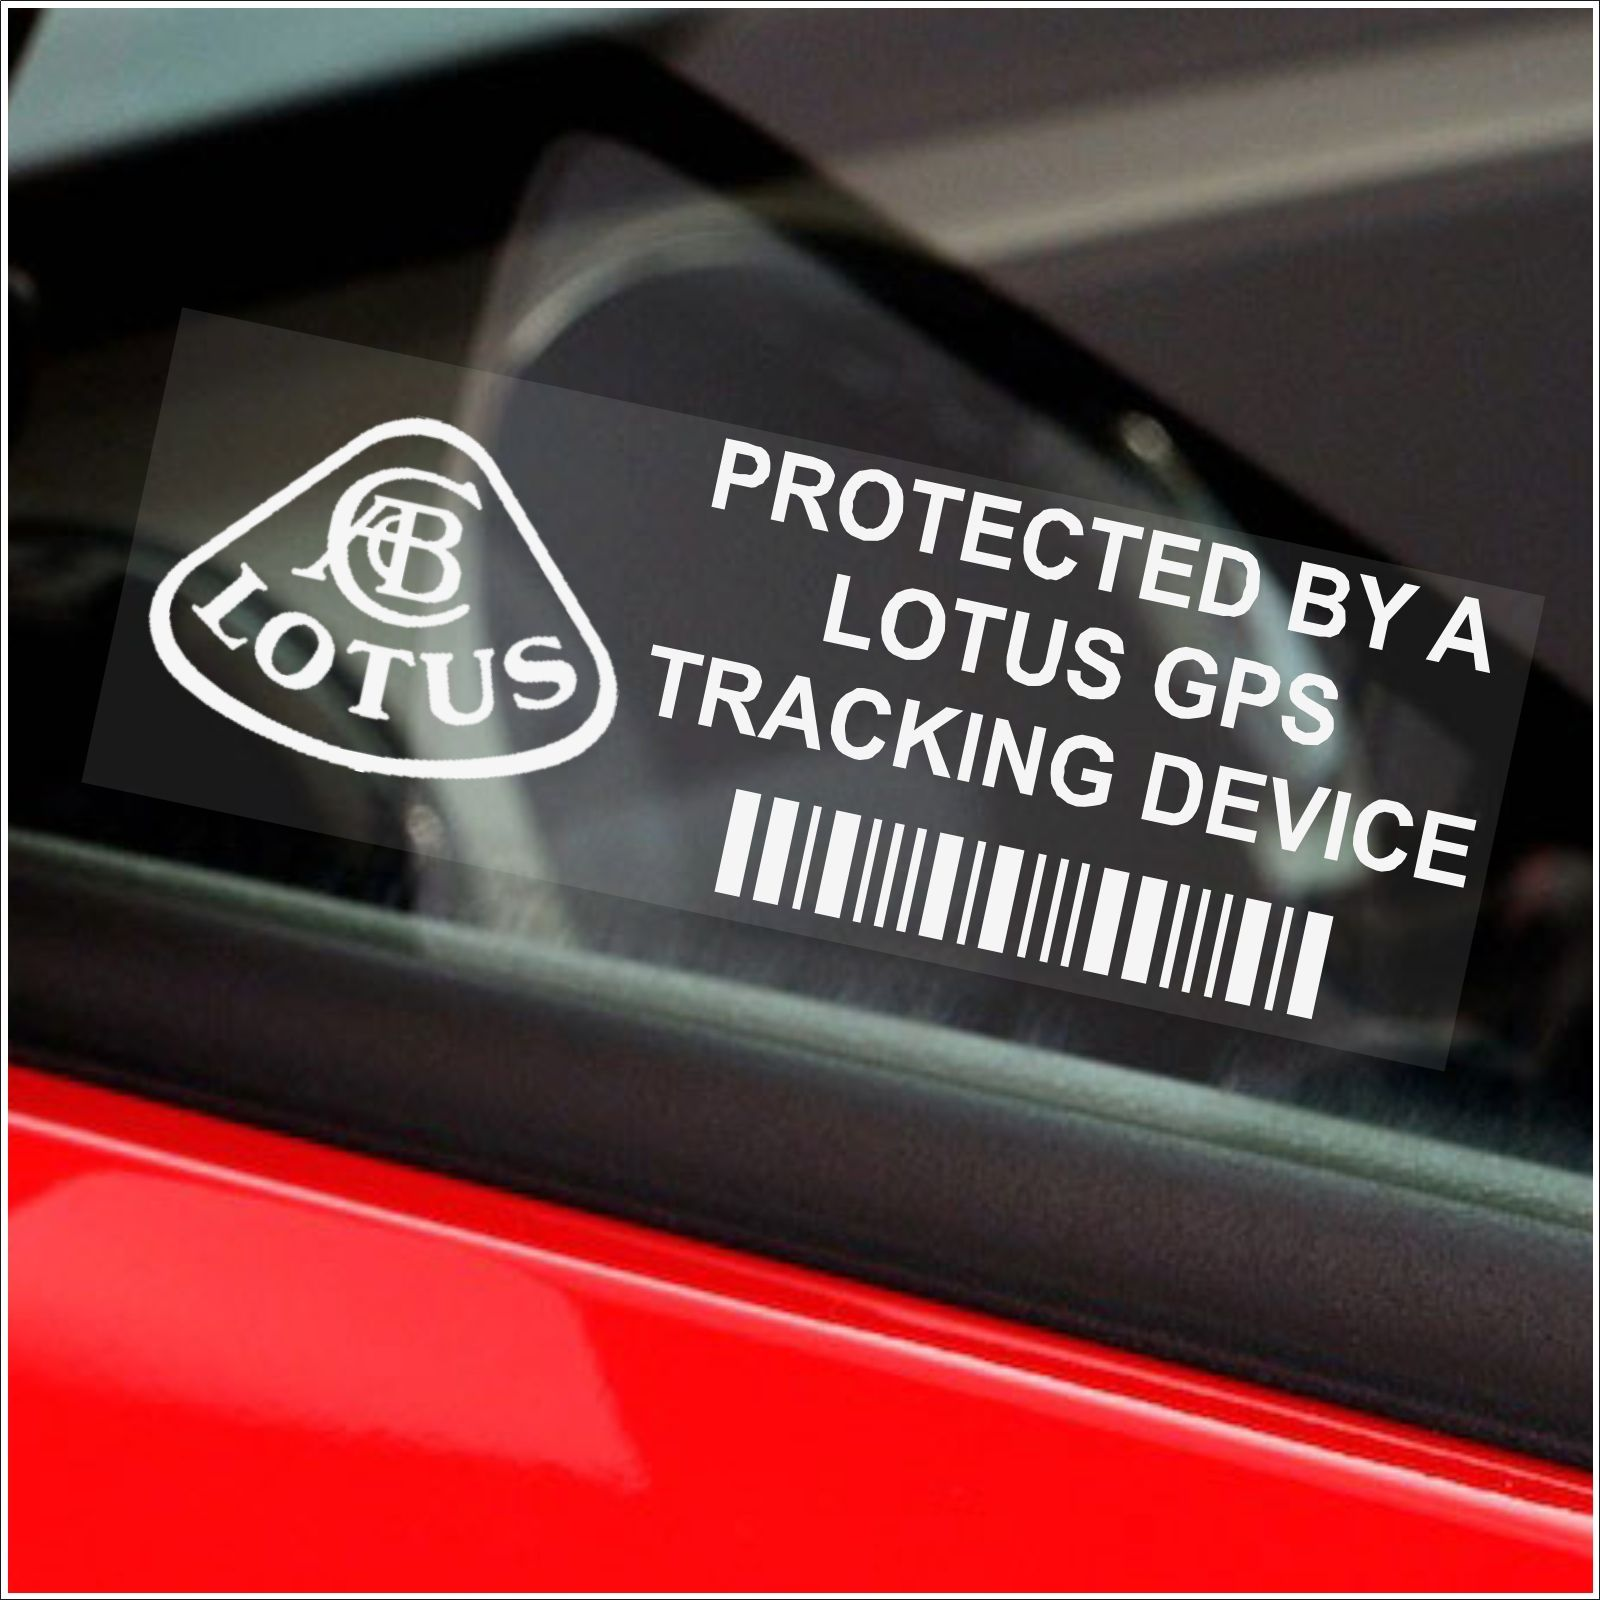 d630cb065d 5 x LOTUS GPS Tracking Device Security WINDOW Stickers-87x30mm-Elise ...